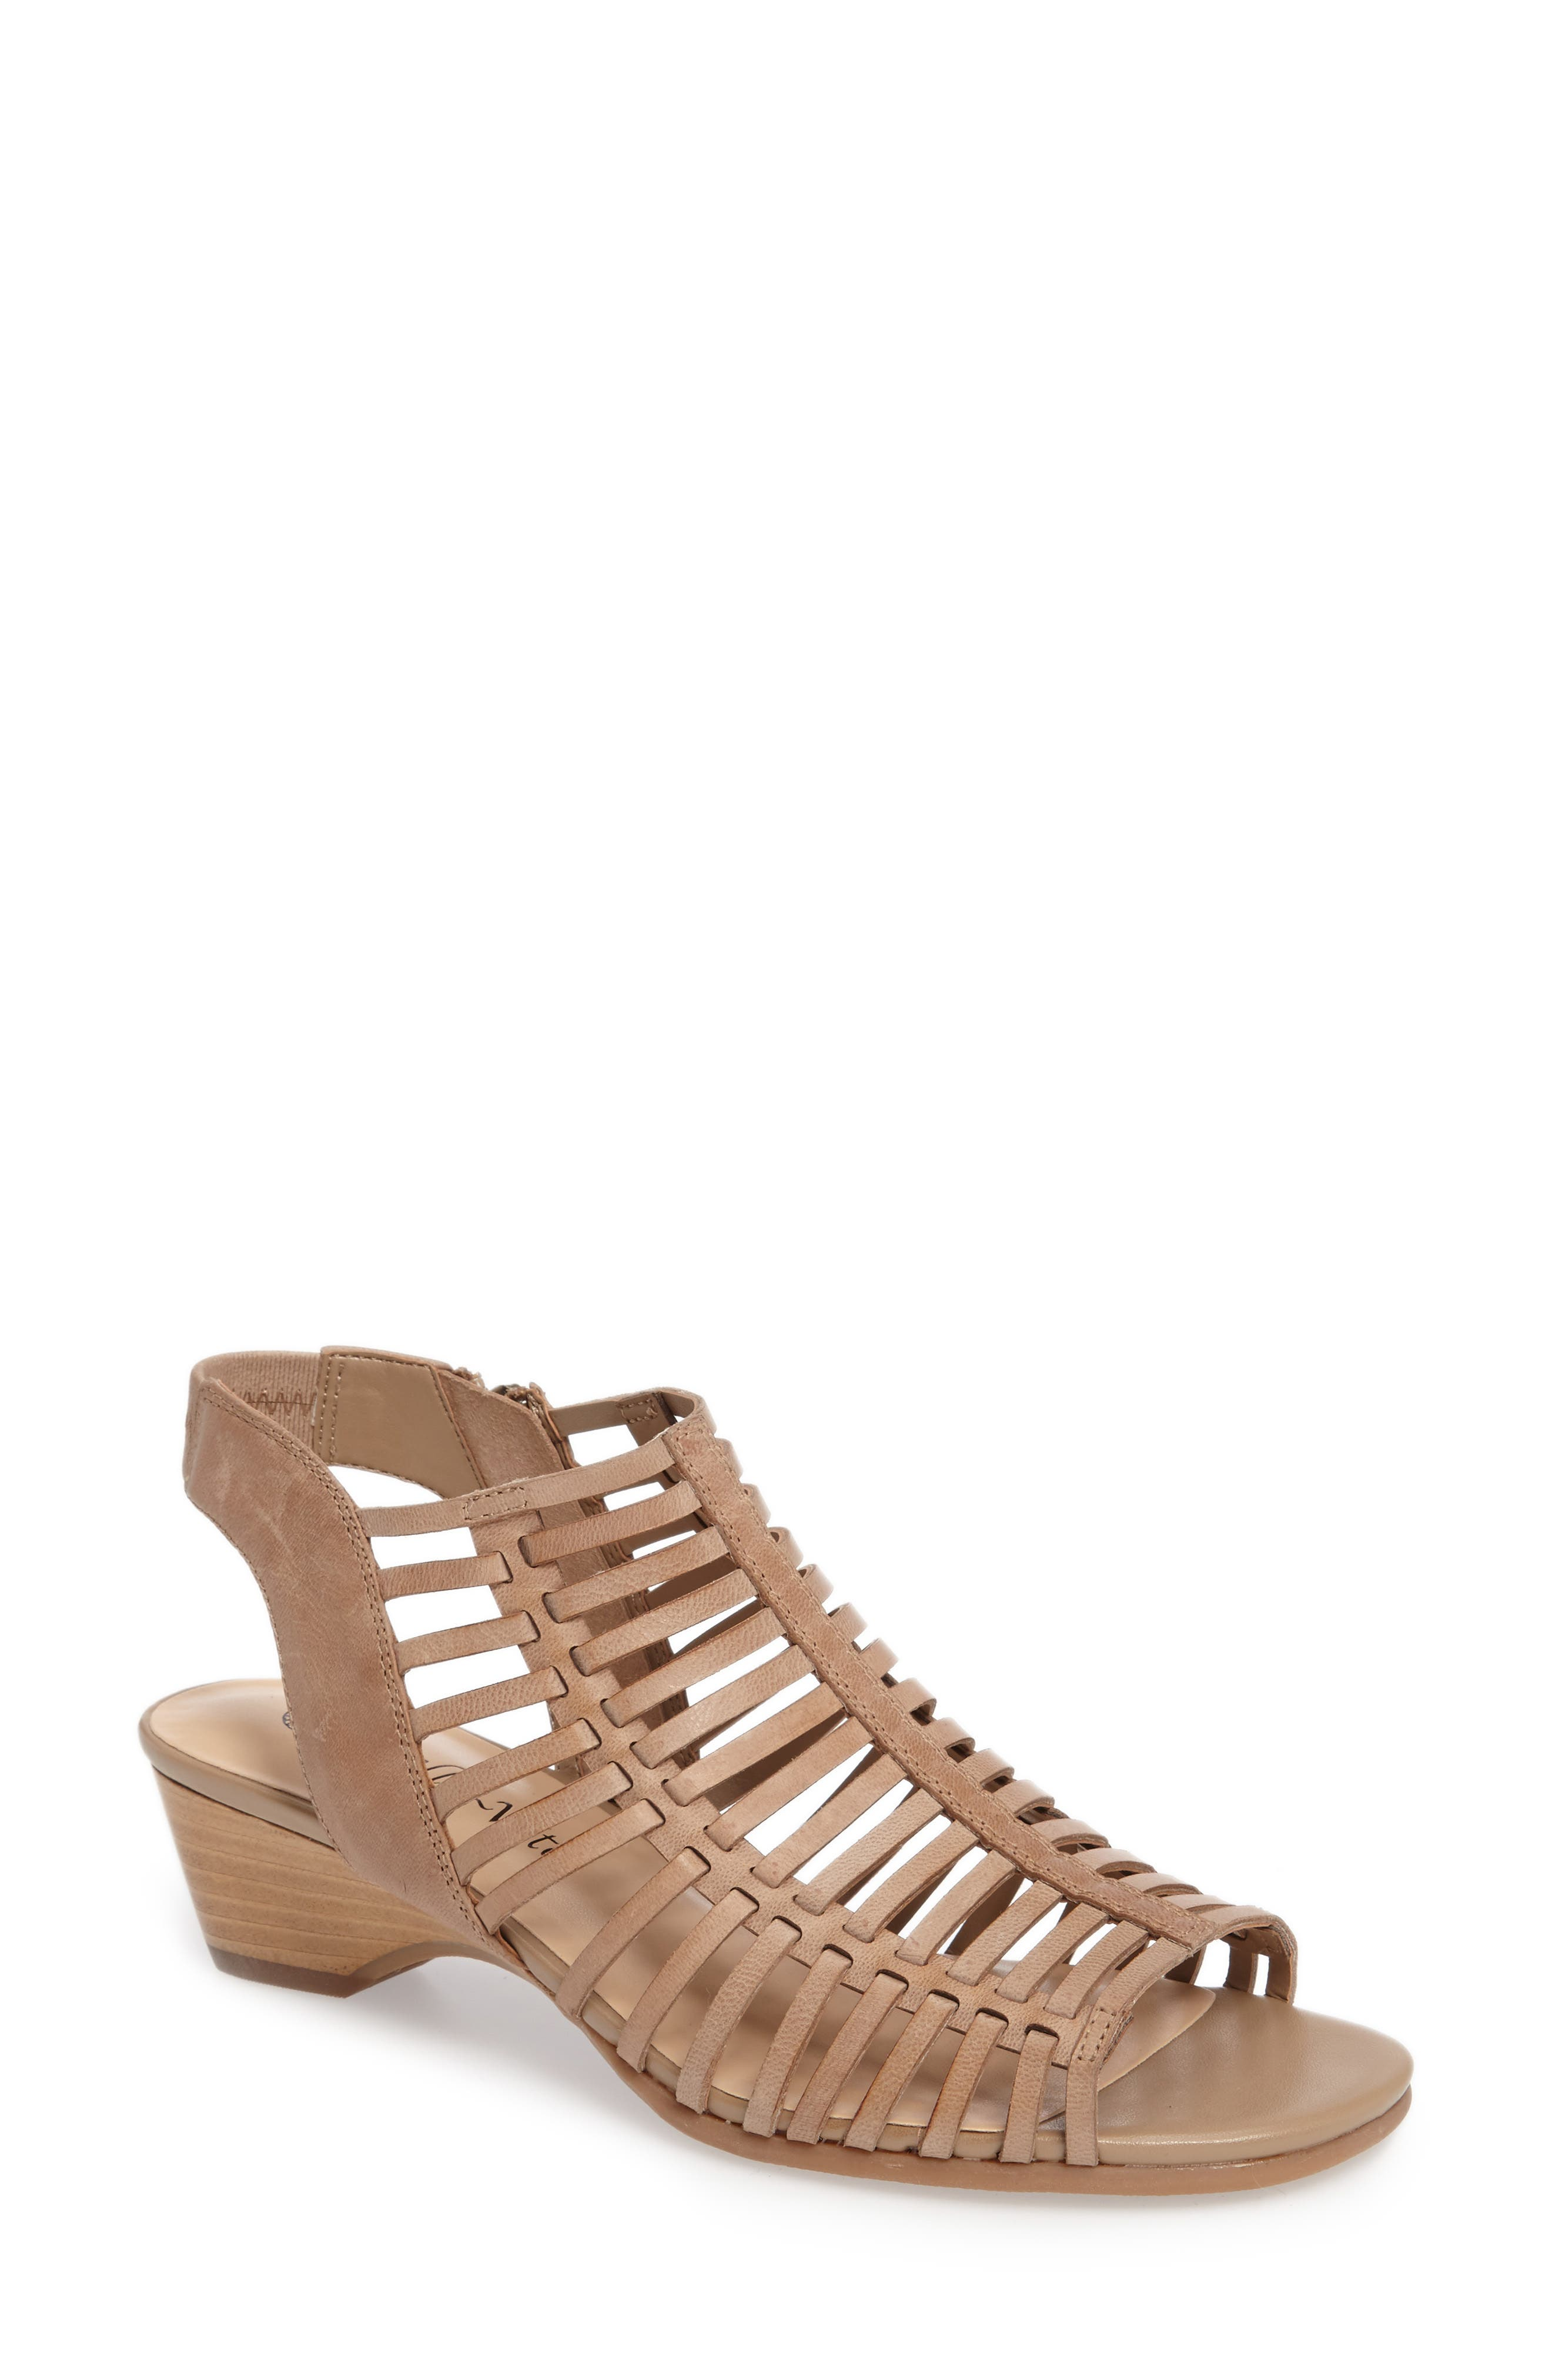 BELLA VITA Pacey Cage Sandal, Main, color, SADDLE LEATHER